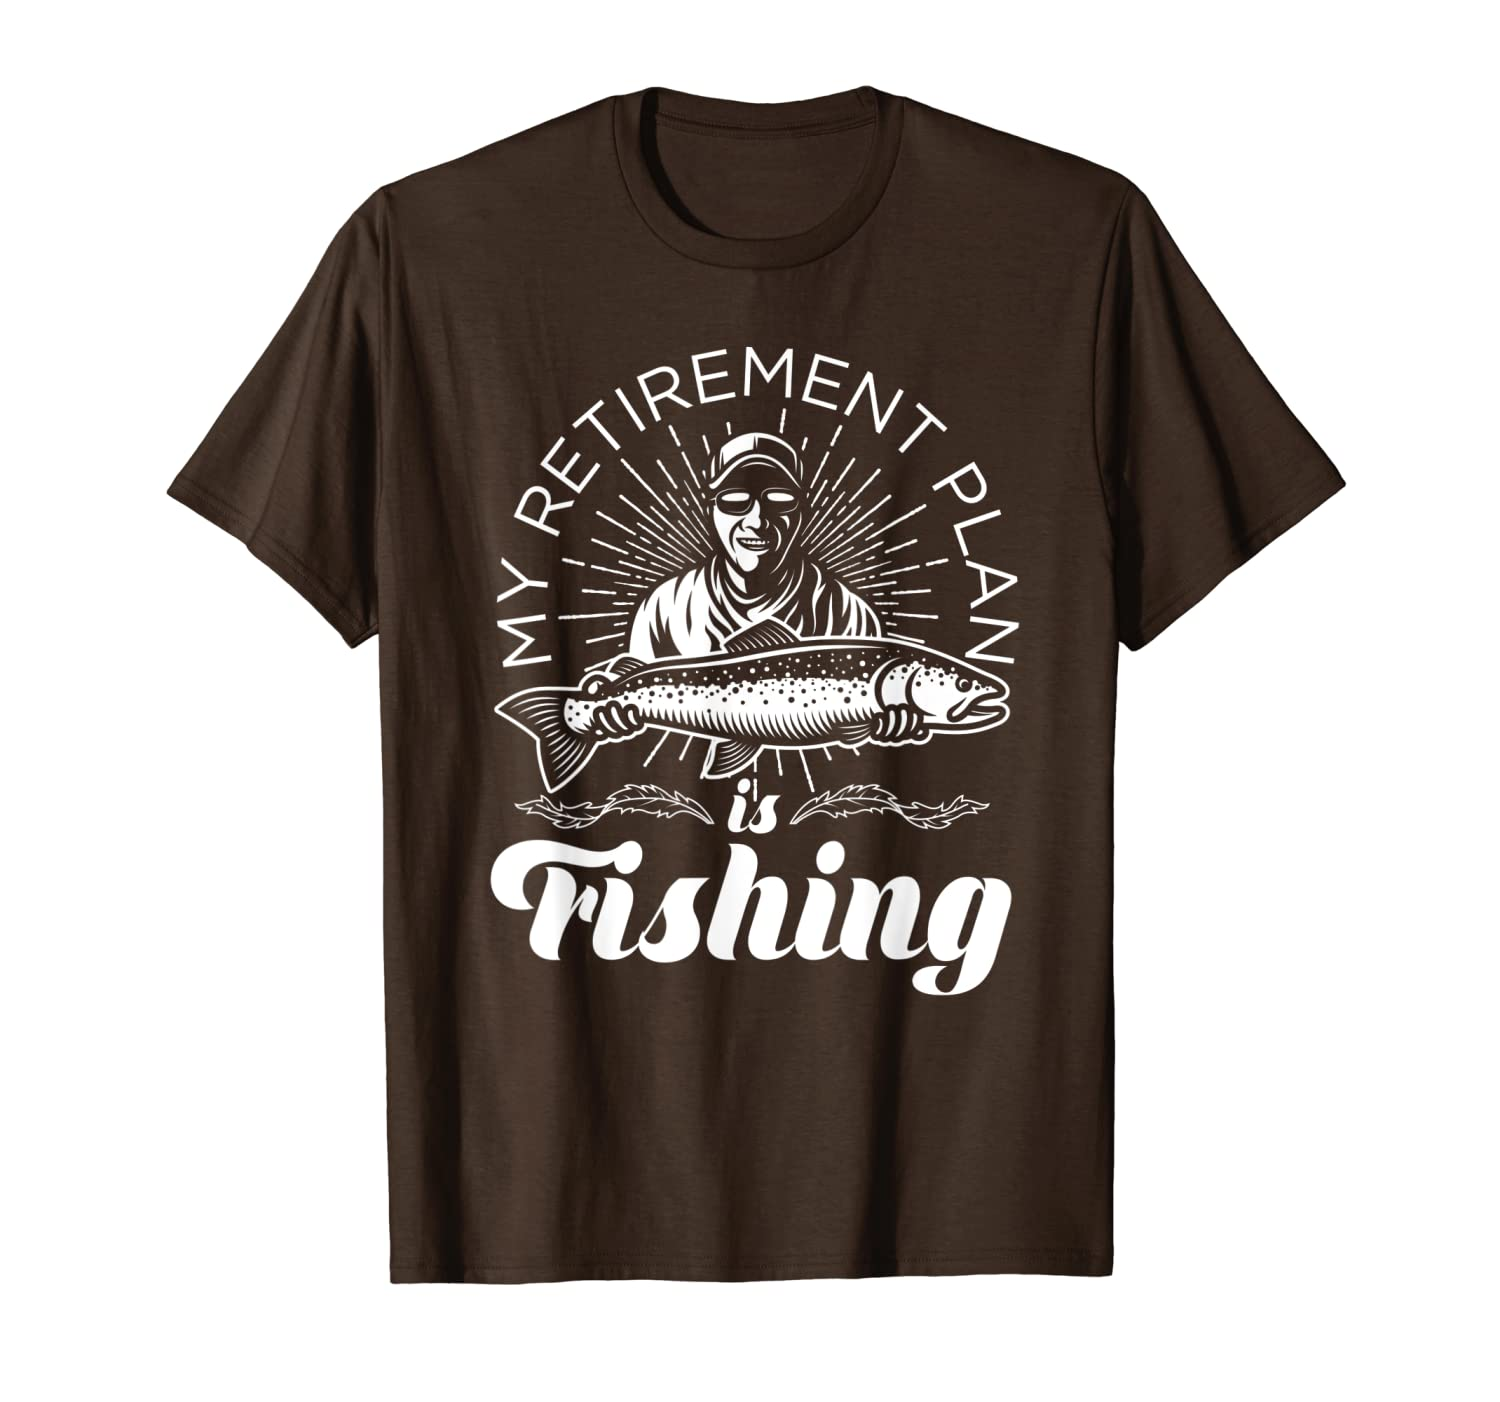 My Retirement Plan is Fishing Shirt TShirt for Fishermen Unisex Tshirt